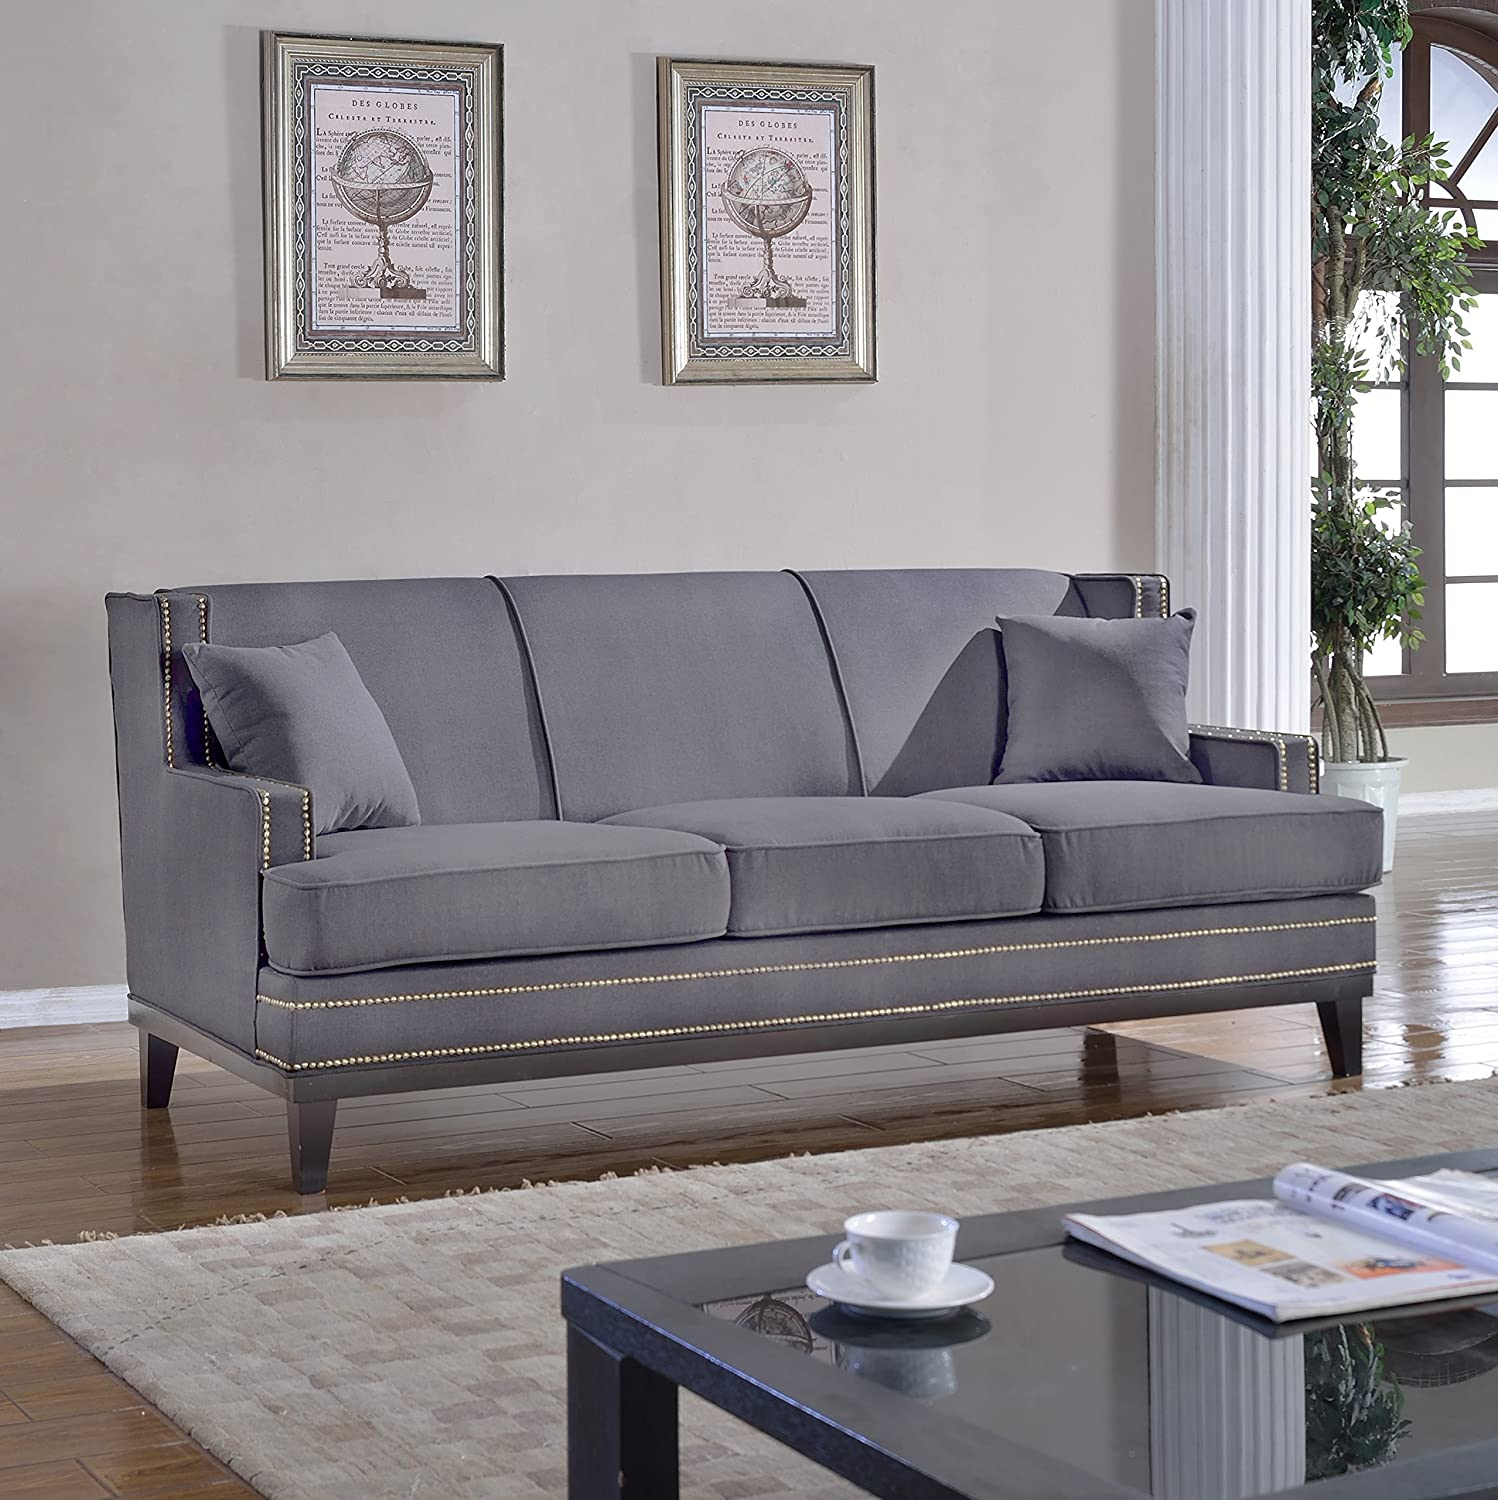 Classic Traditional Soft Linen Sofa with Nailhead Trim - Living Room Furniture (Light Grey)